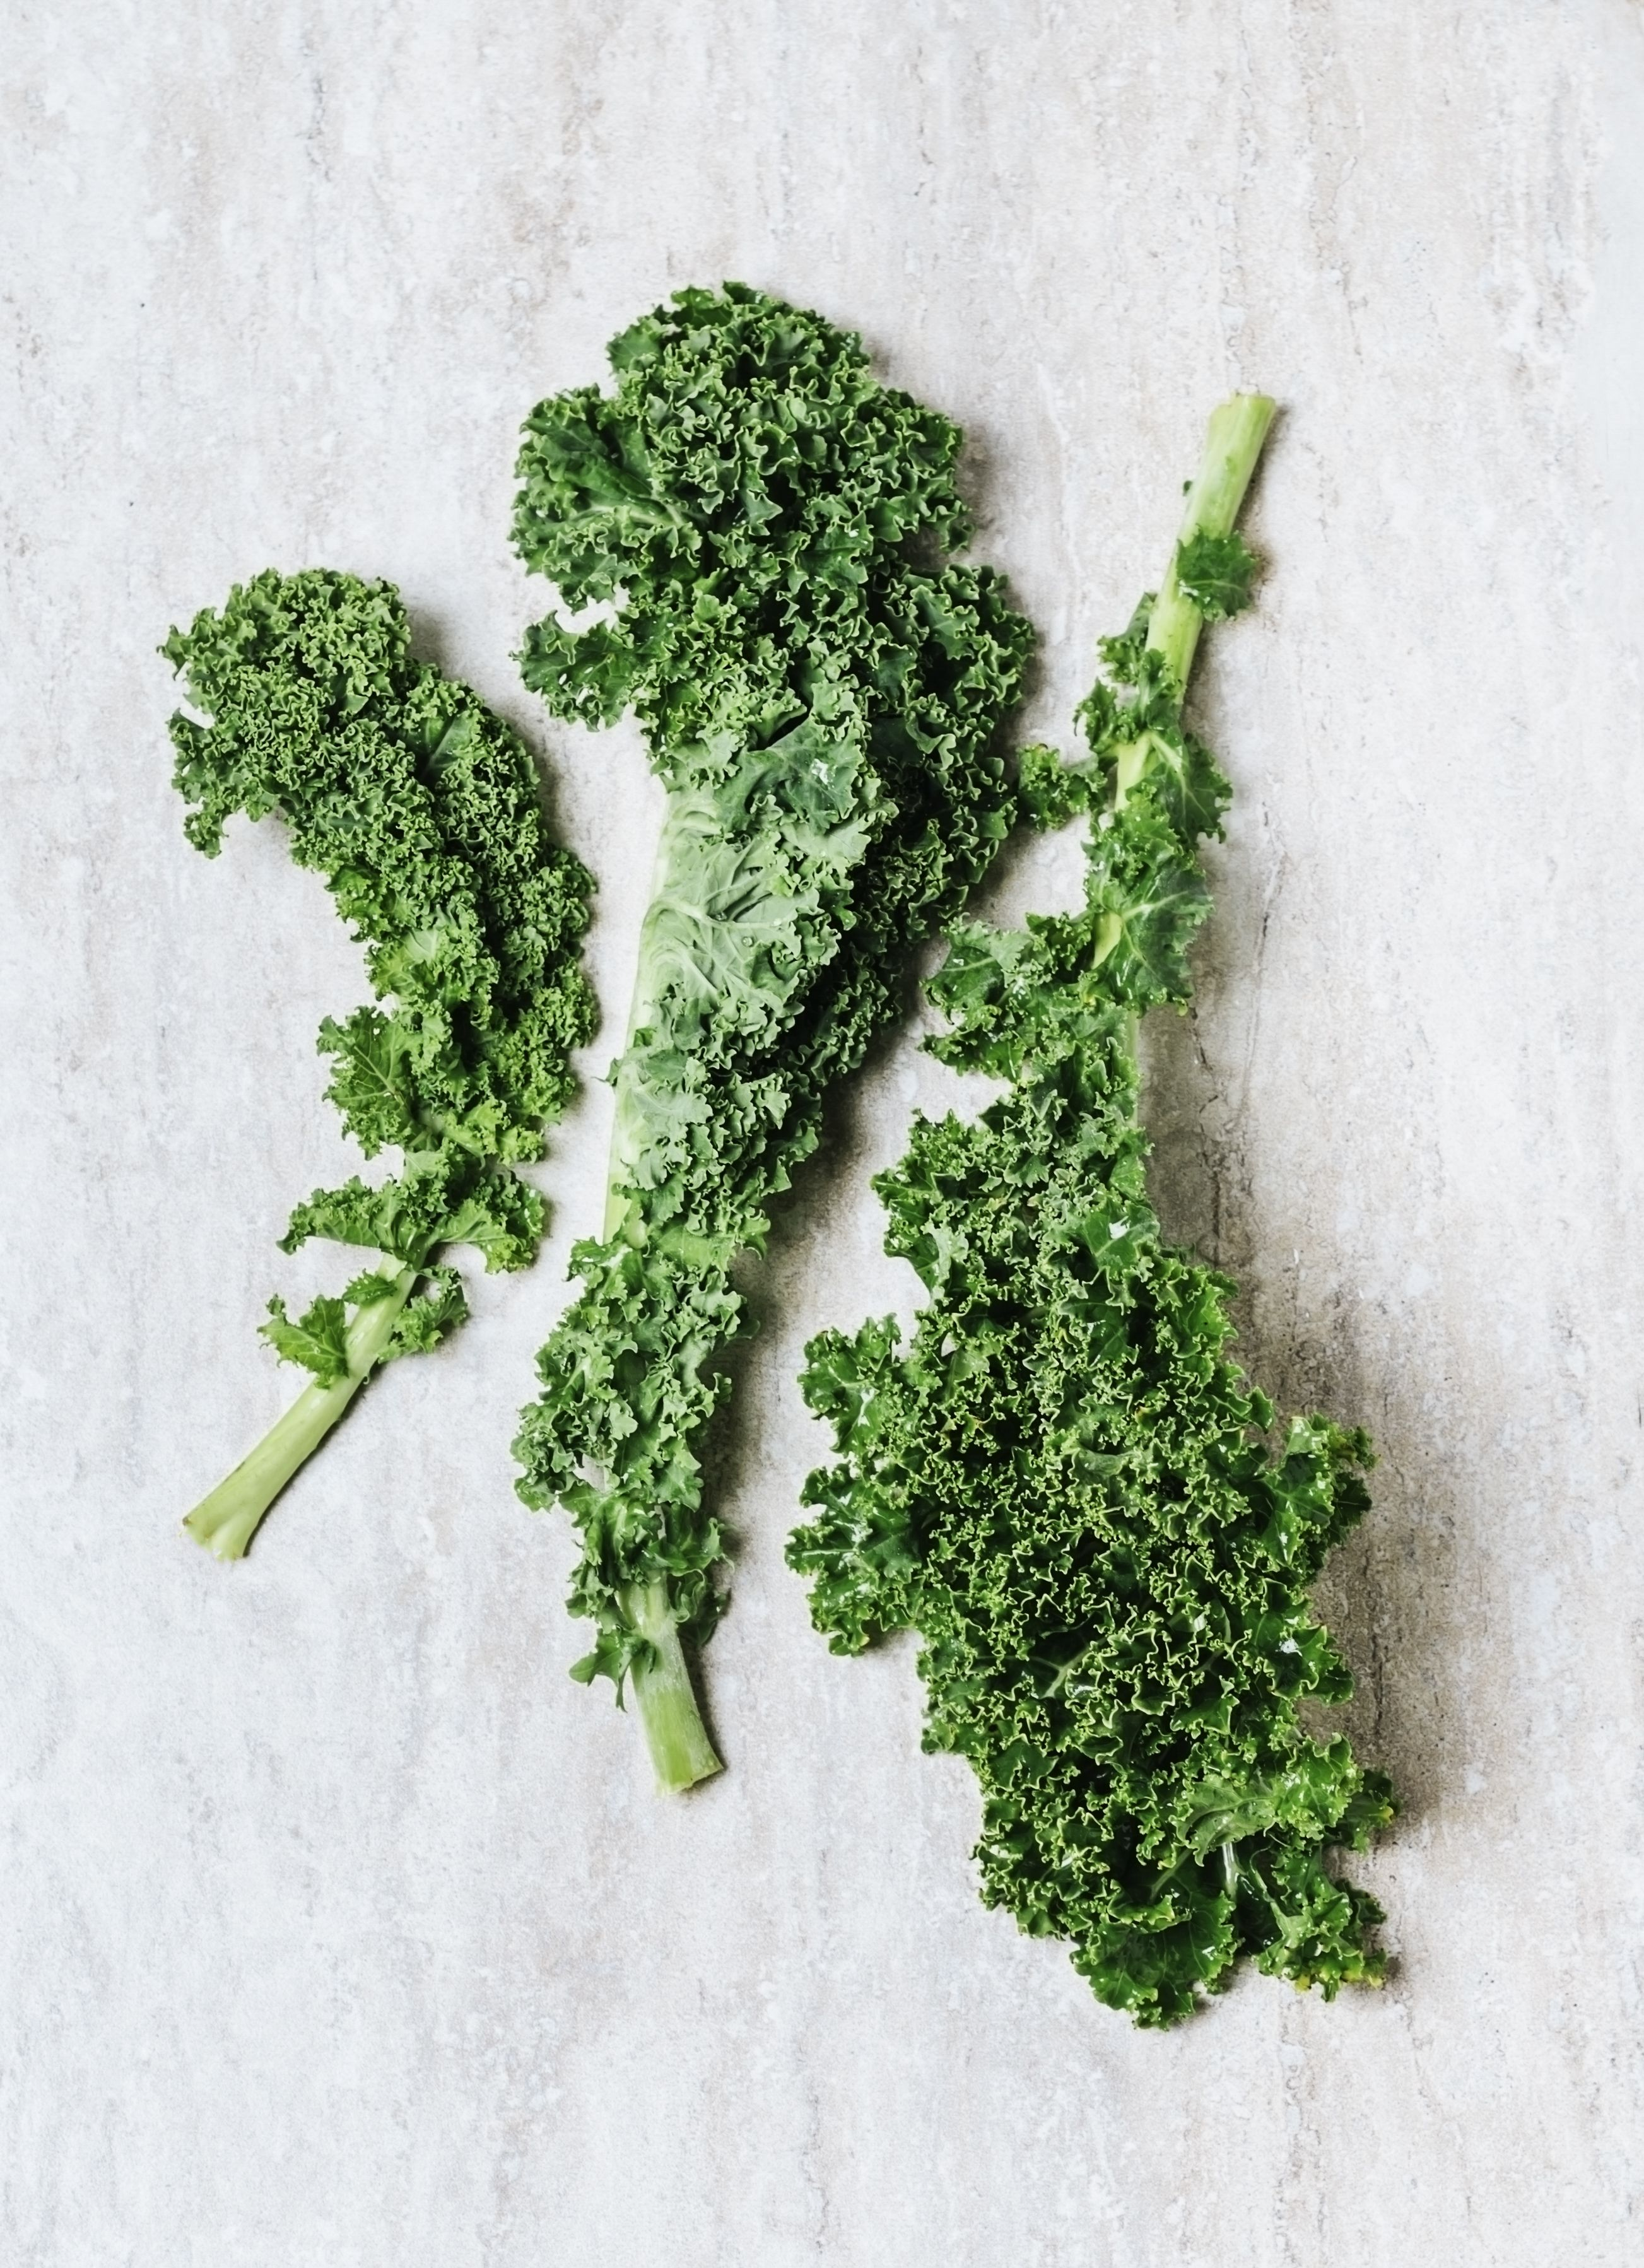 People Are Getting Seriously Sick From Eating Kale